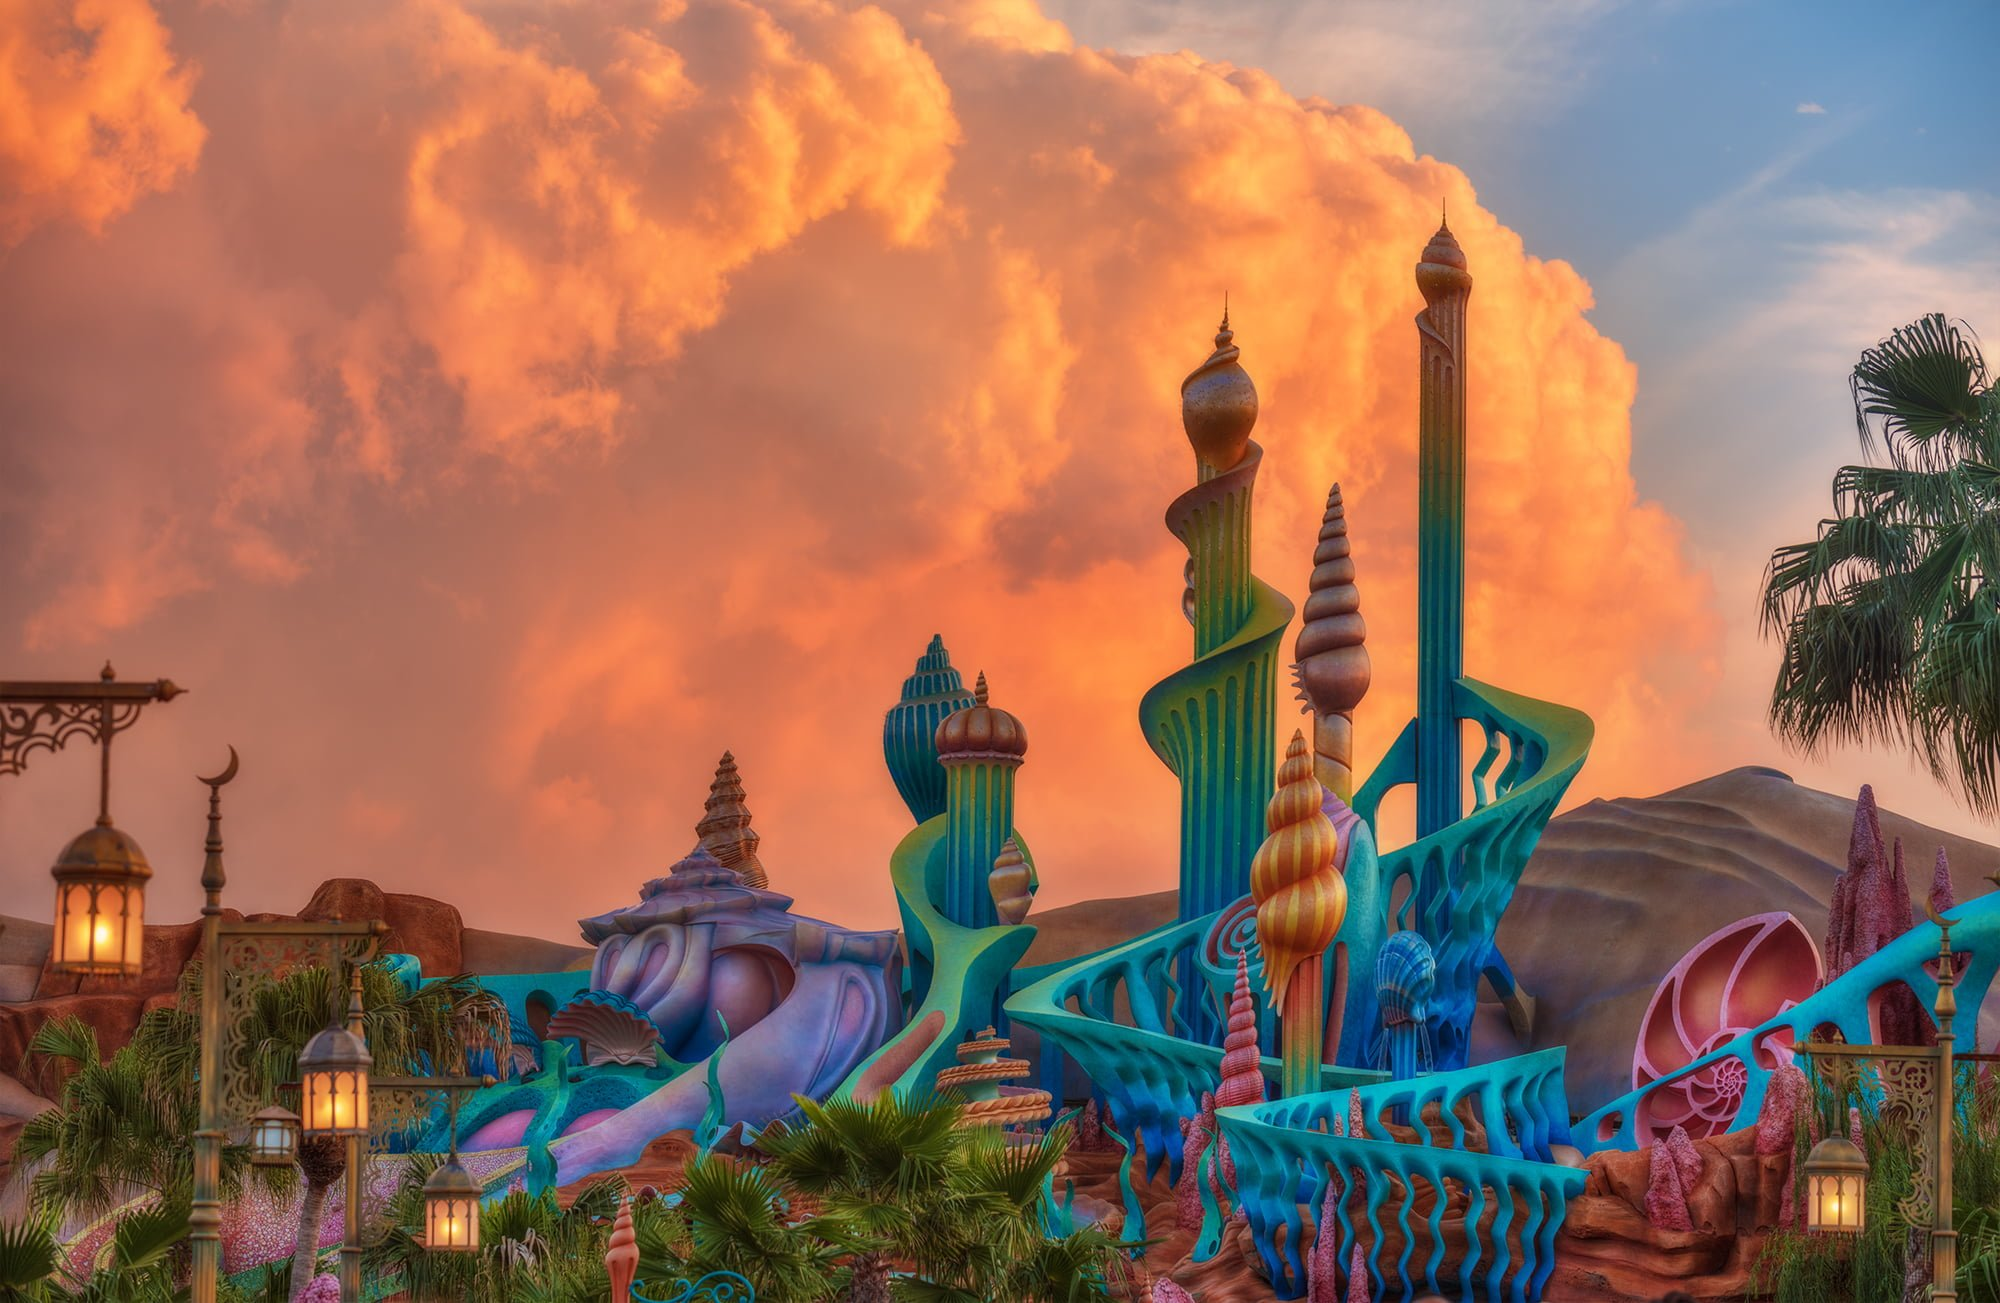 Disneyland Paris Holidays and Special Offers. Breakaway offer the best deals for your magic vacation with offers including Disney hotels and park passes.